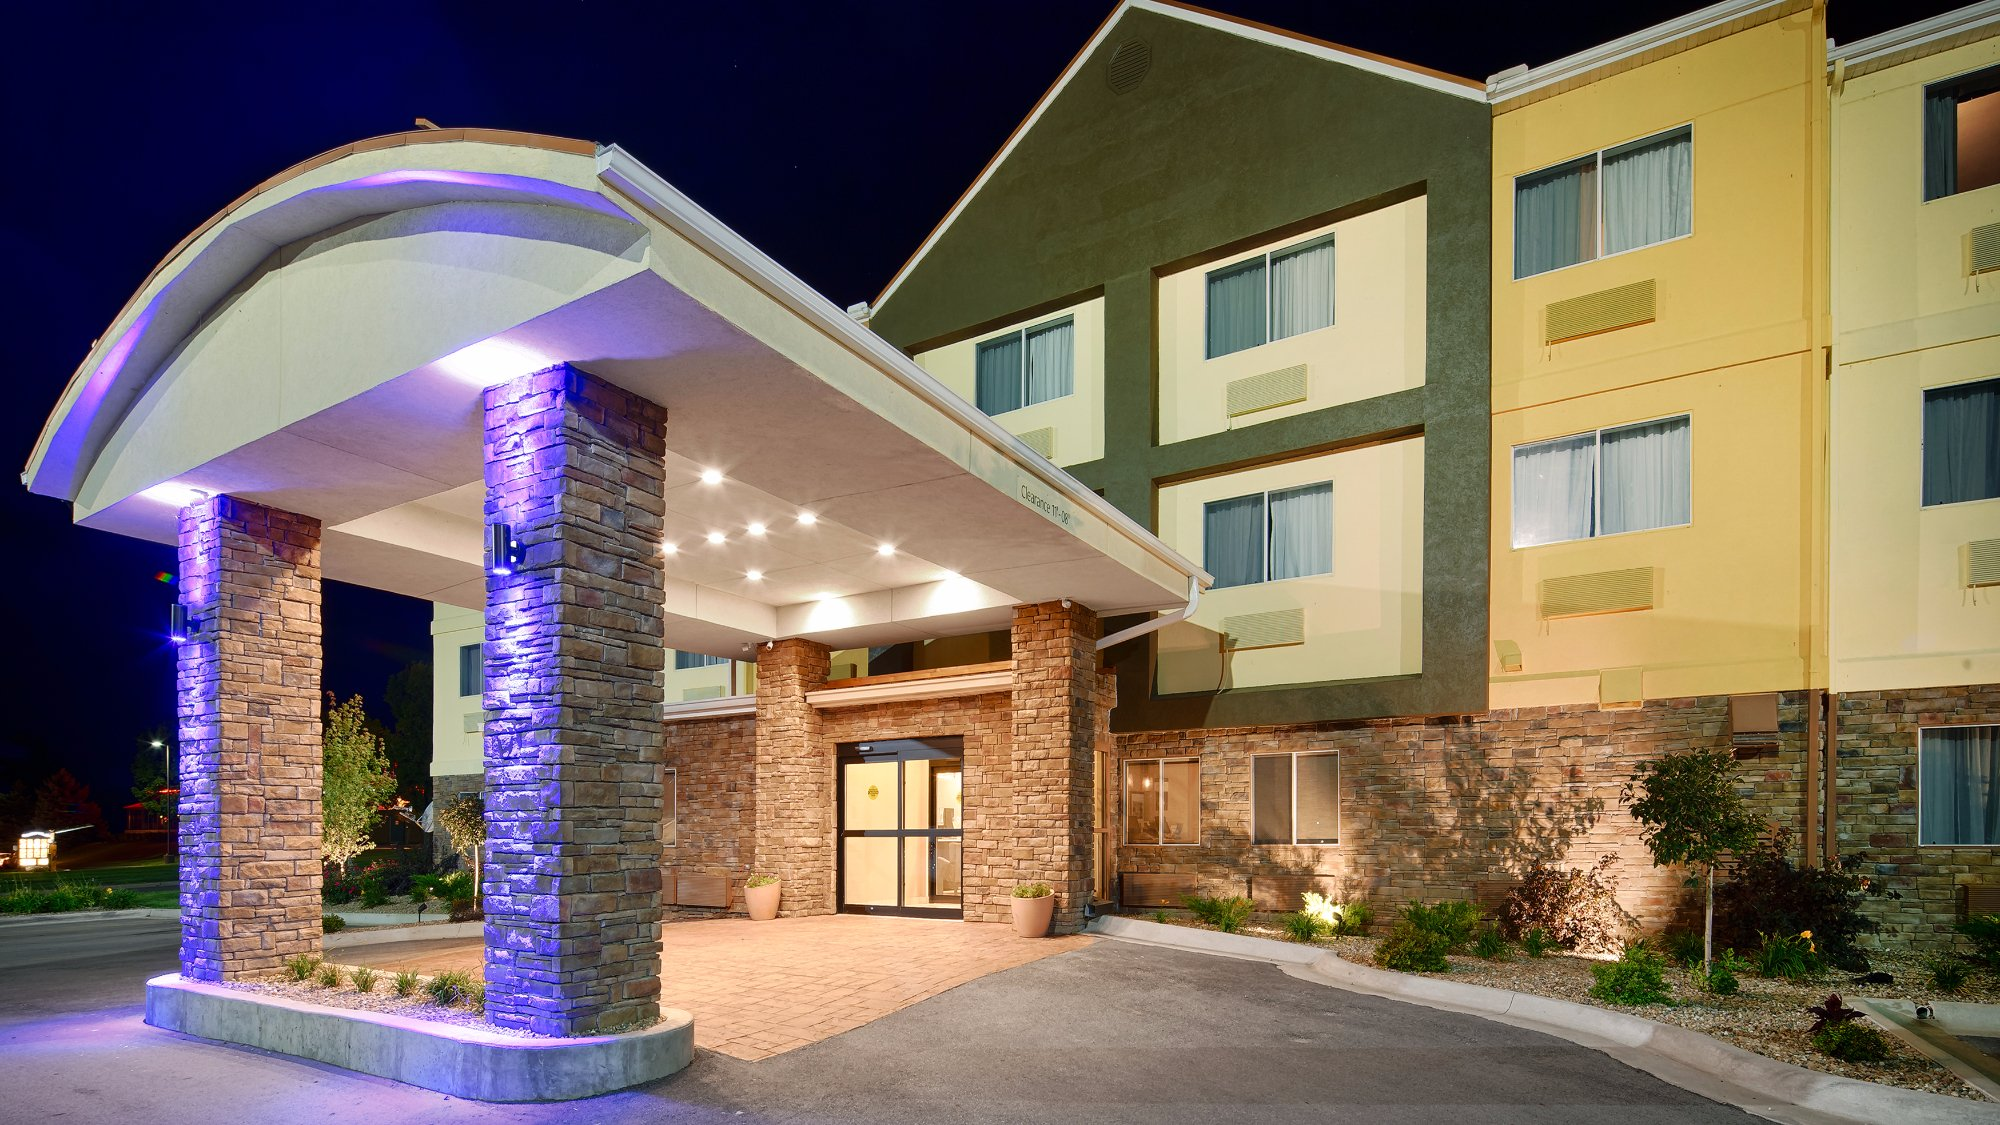 BEST WESTERN Pearl City Inn